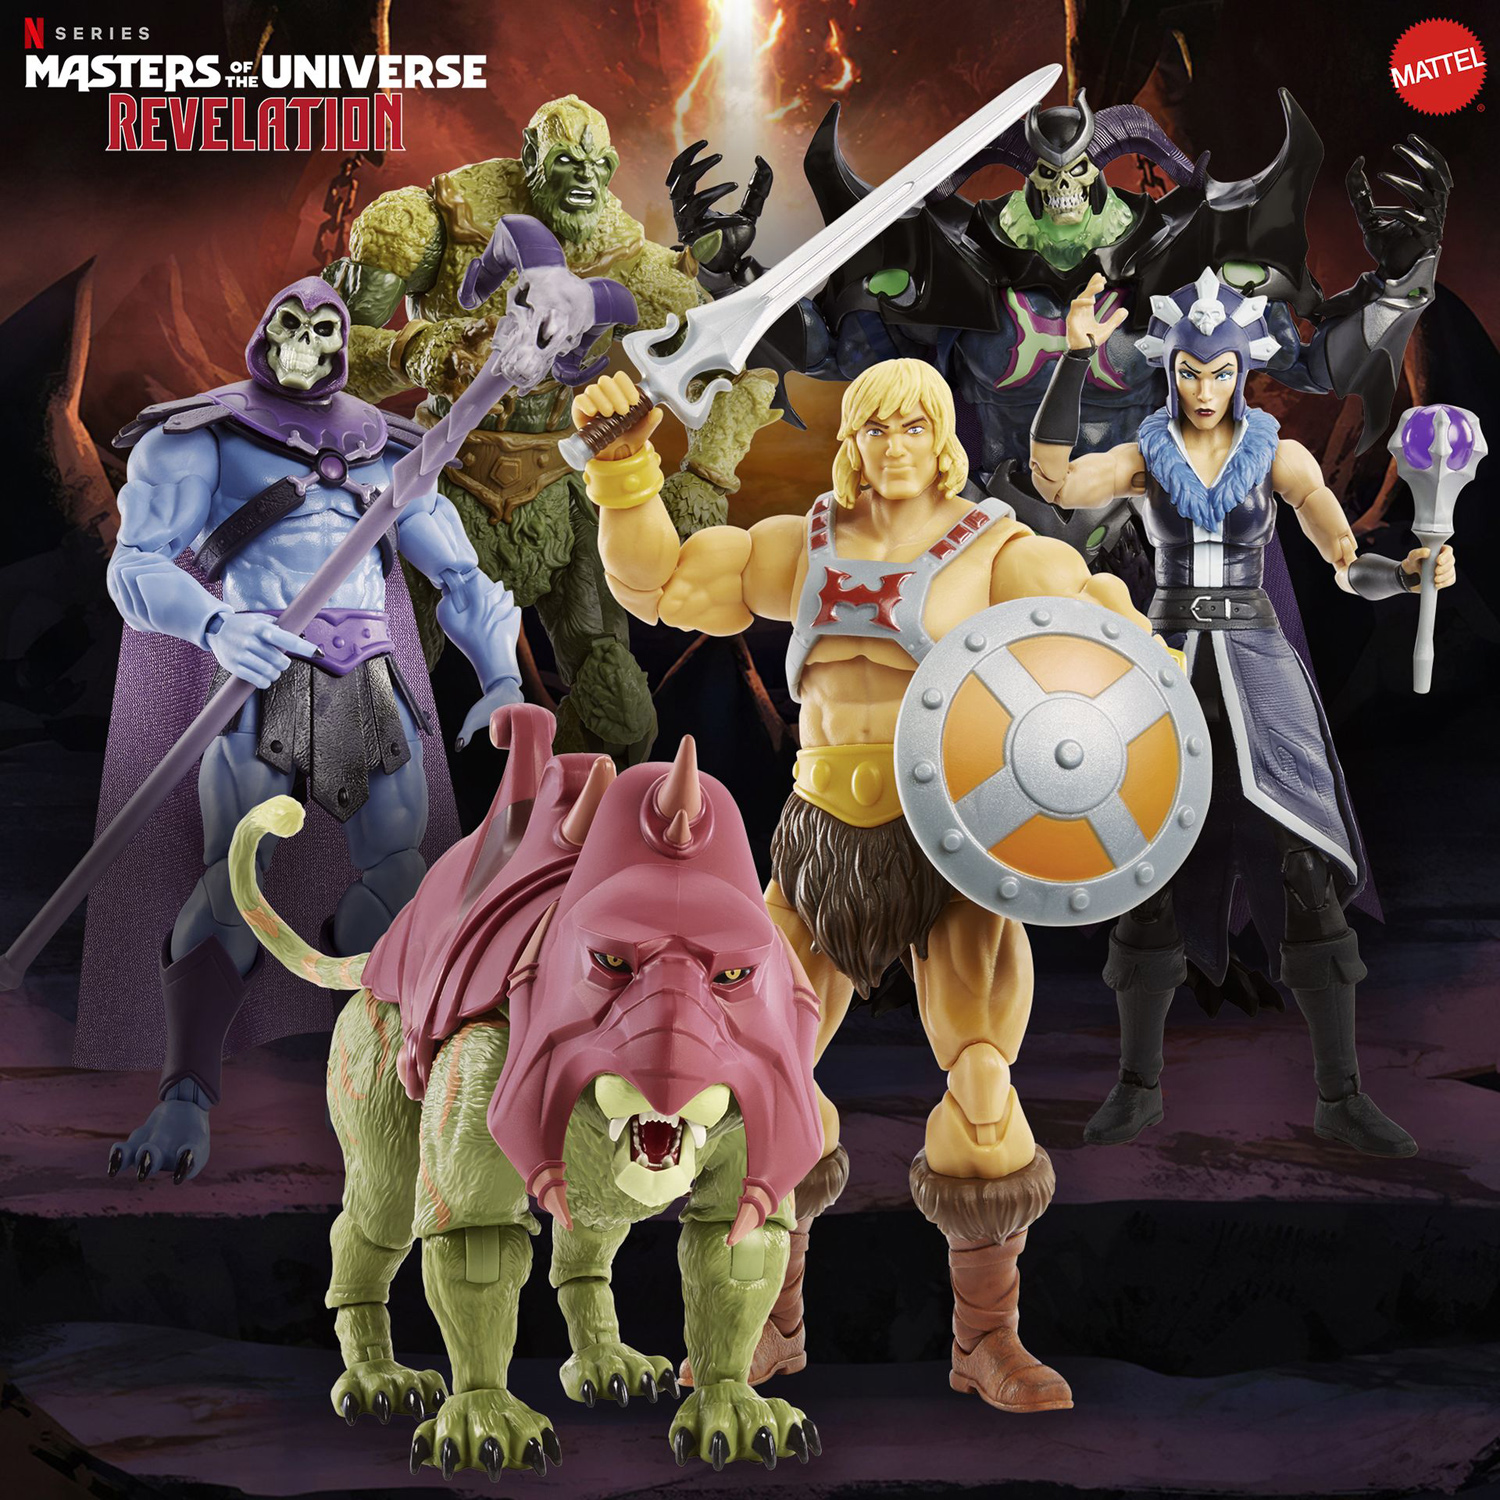 masters-of-the-universe-revelation-masterverse-action-figures-preorder